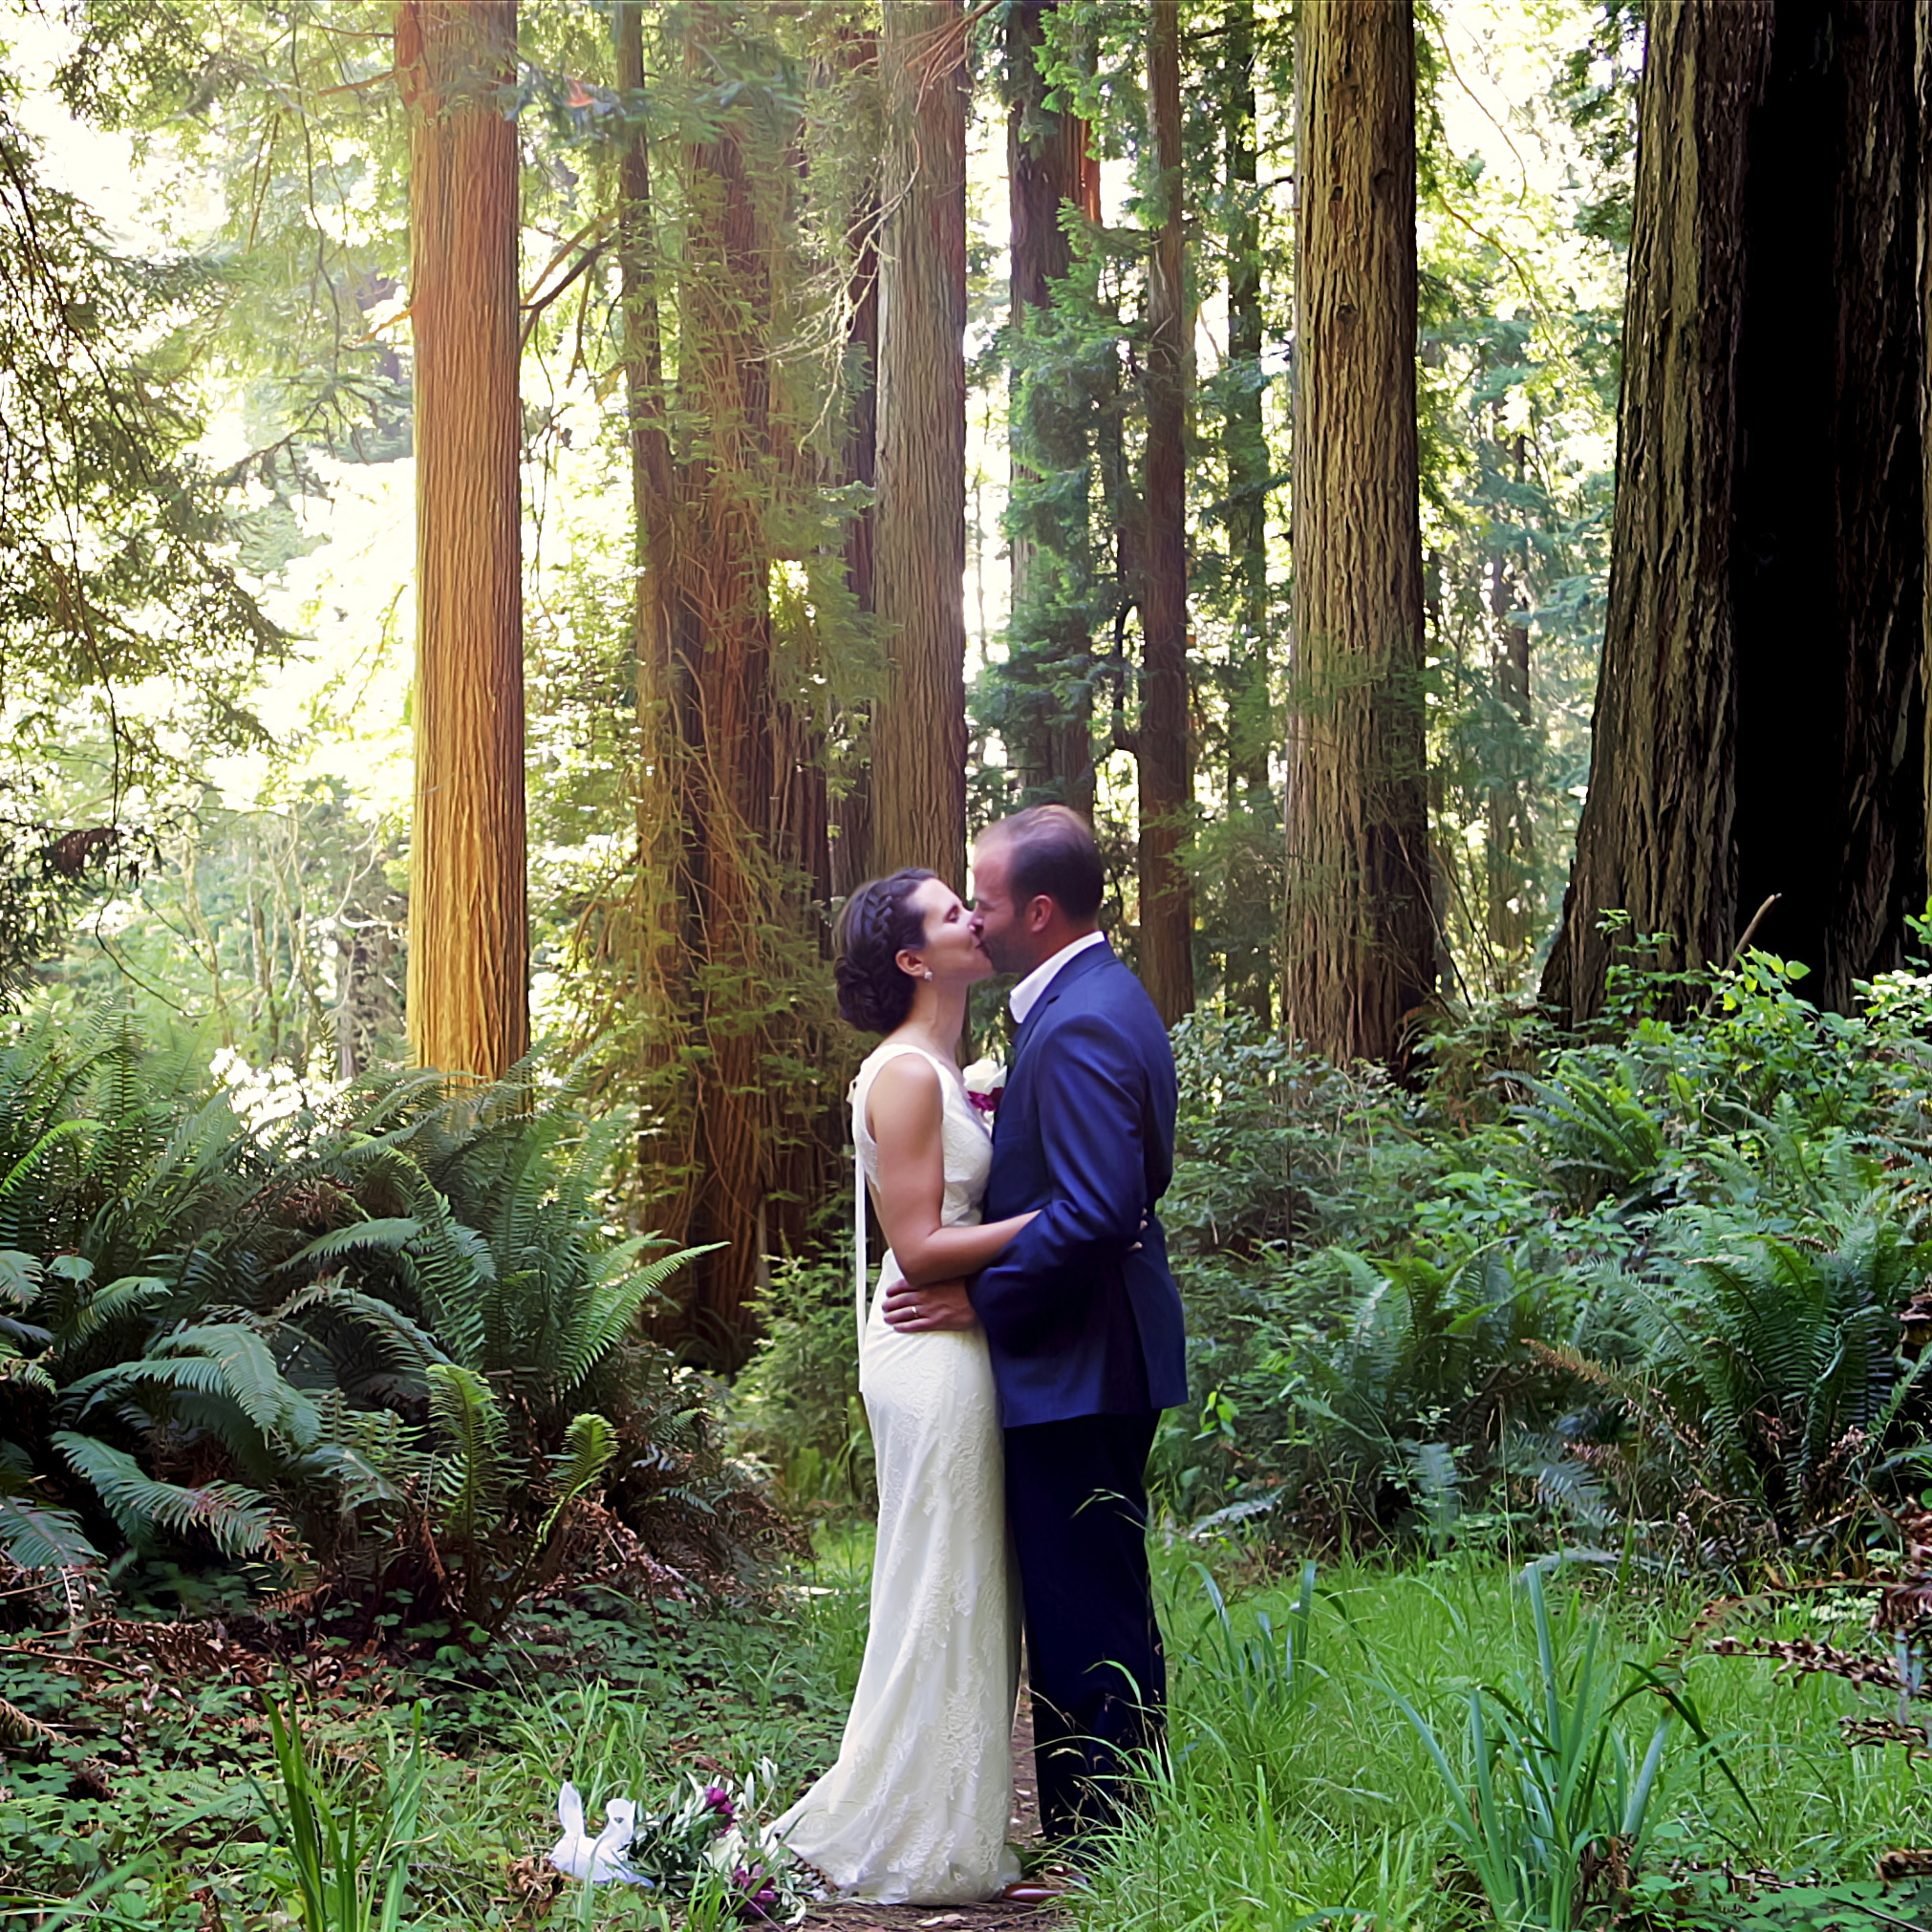 Bride and Groom getting married in Redwood forest